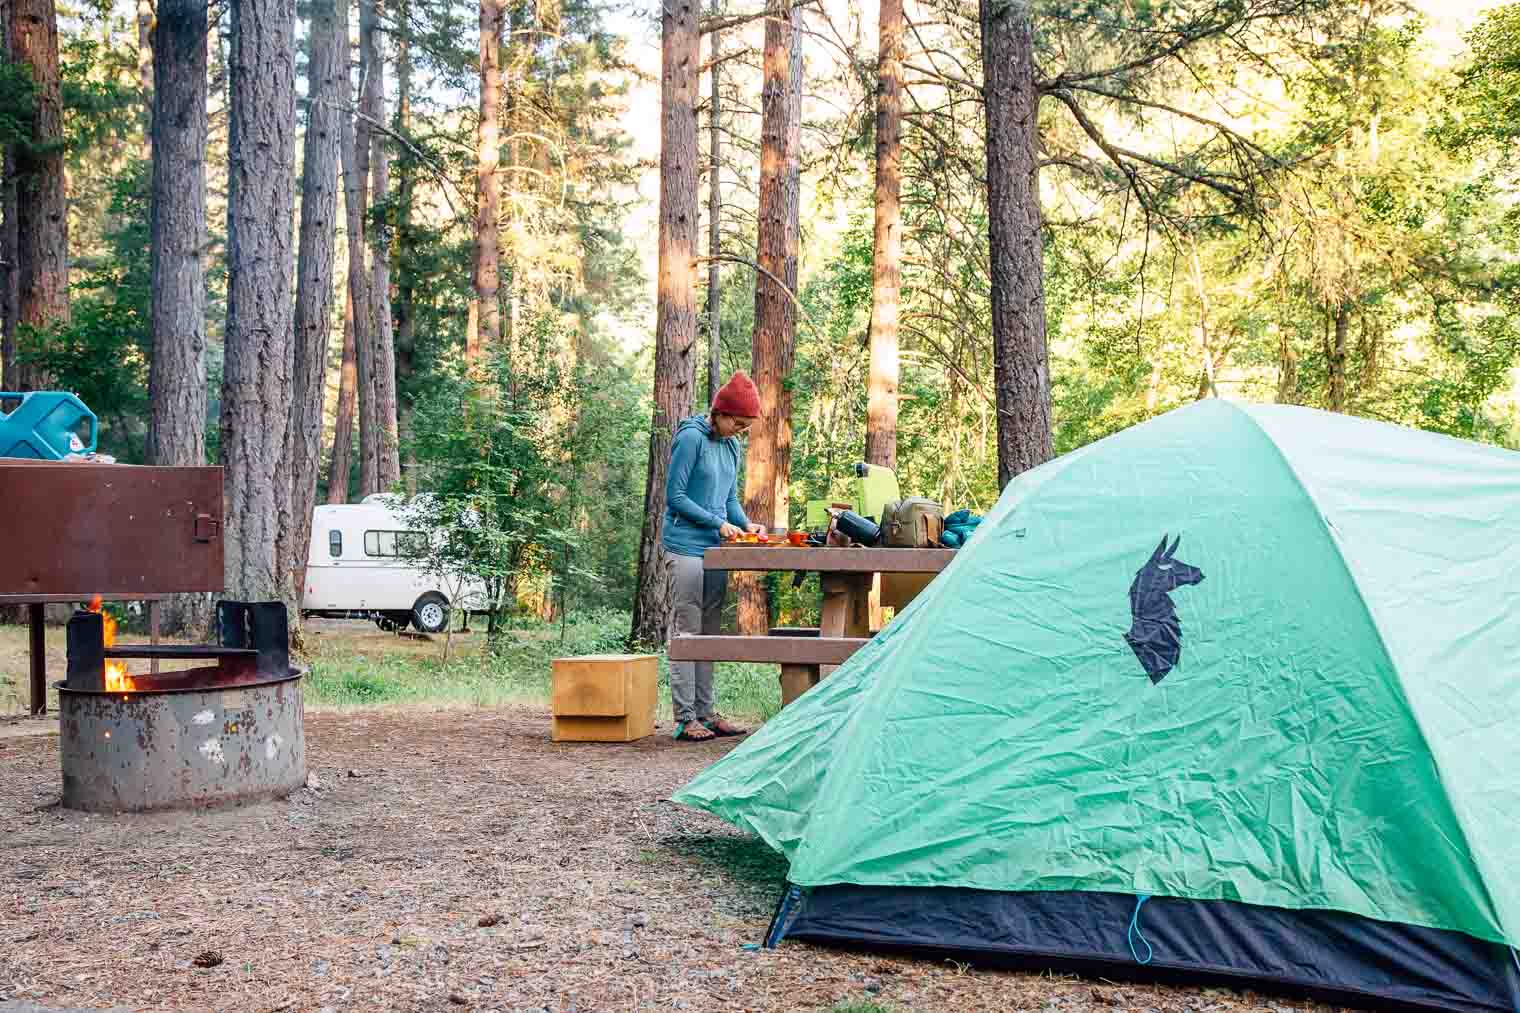 Camping at Steel Bridge Campground